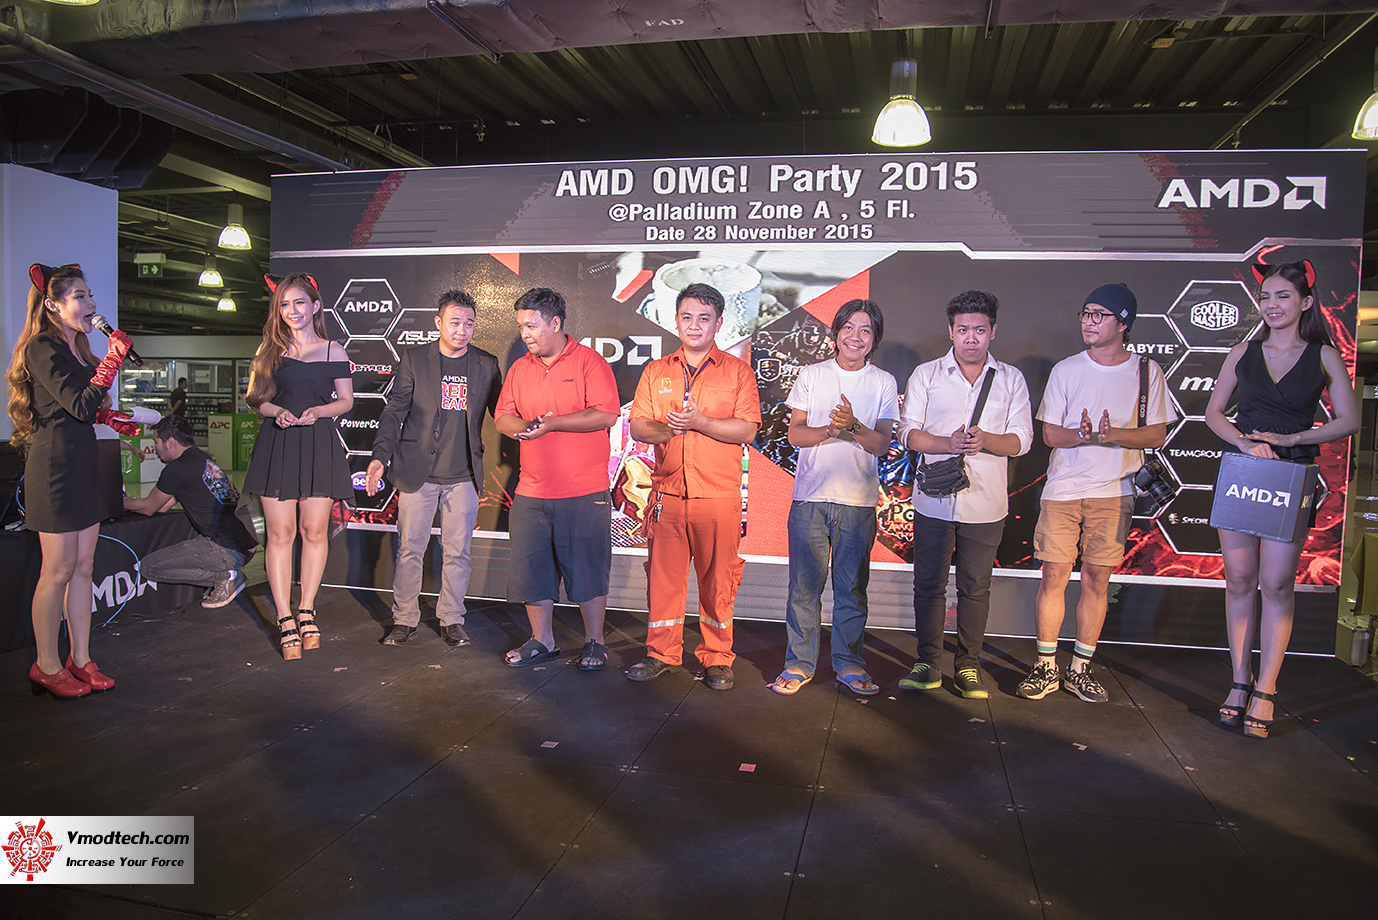 dsc 3171 AMD OMG! Party 2015 (AMD Overclock Modding Gaming Party 2015)